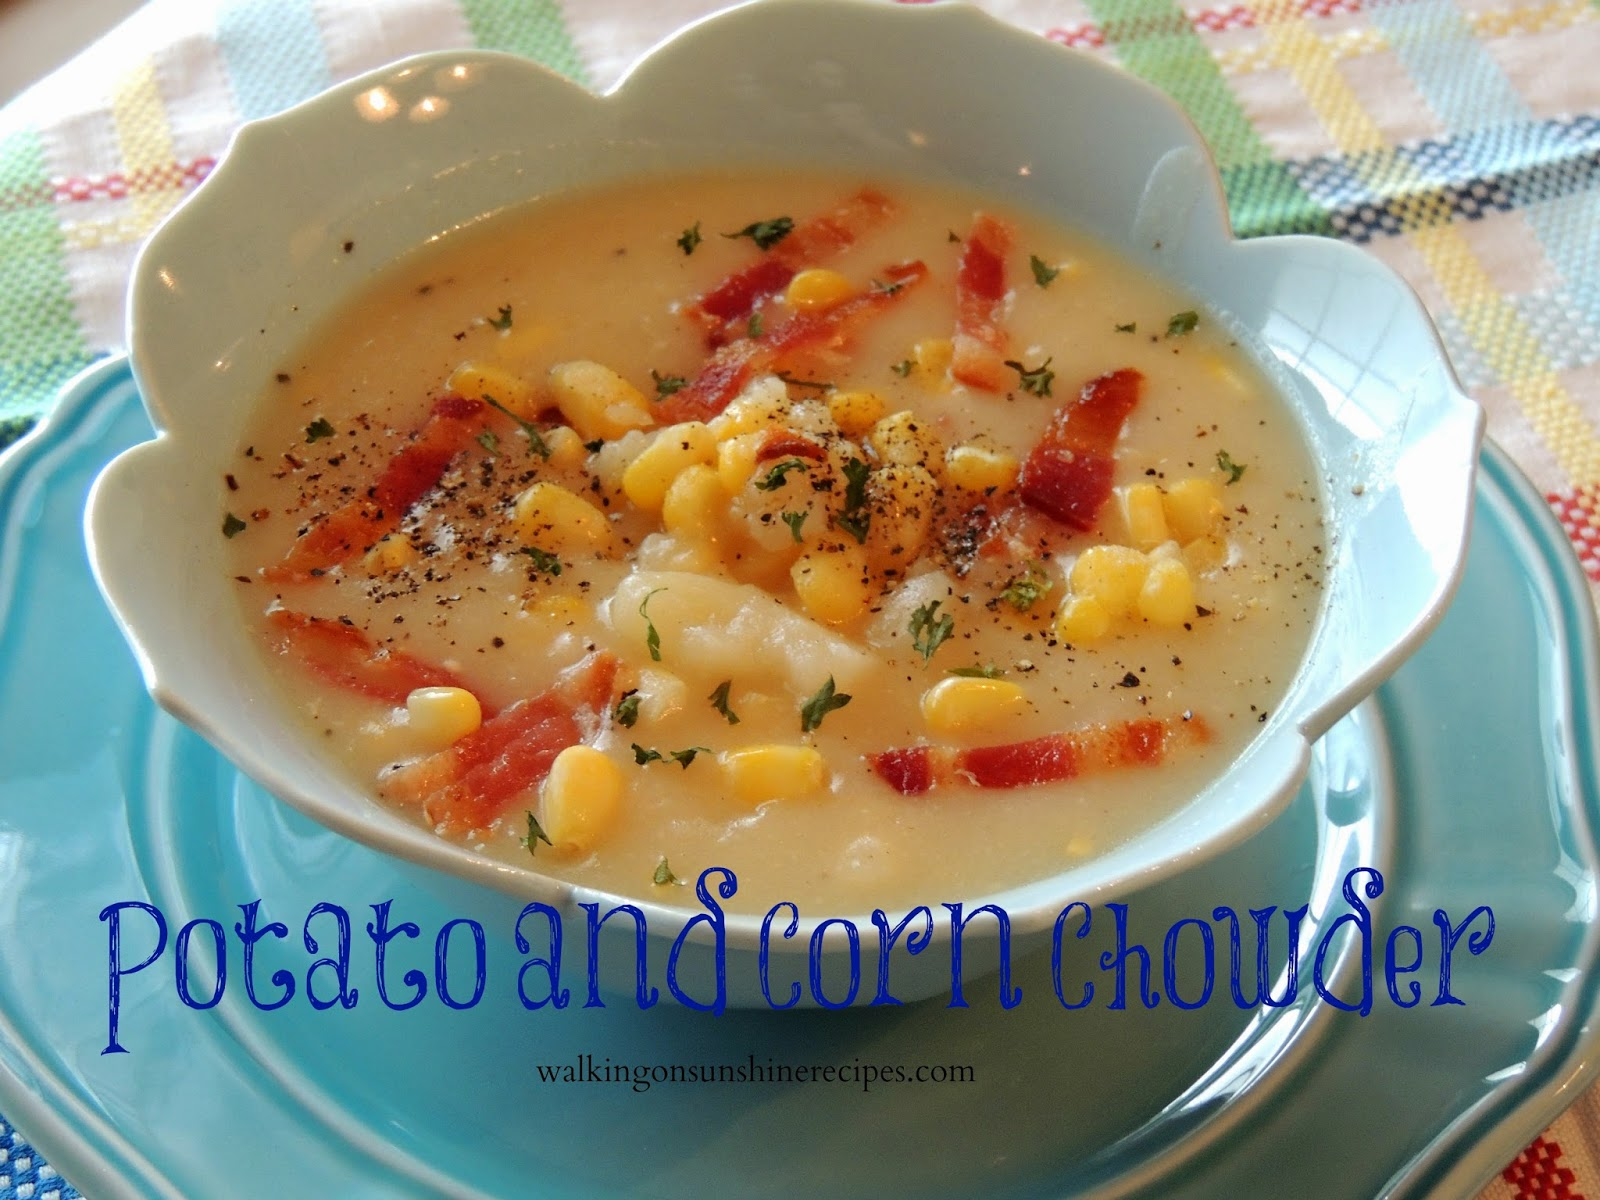 A delicious recipe for potato and corn chowder that cooks in your crock pot!  Walking on Sunshine Recipes